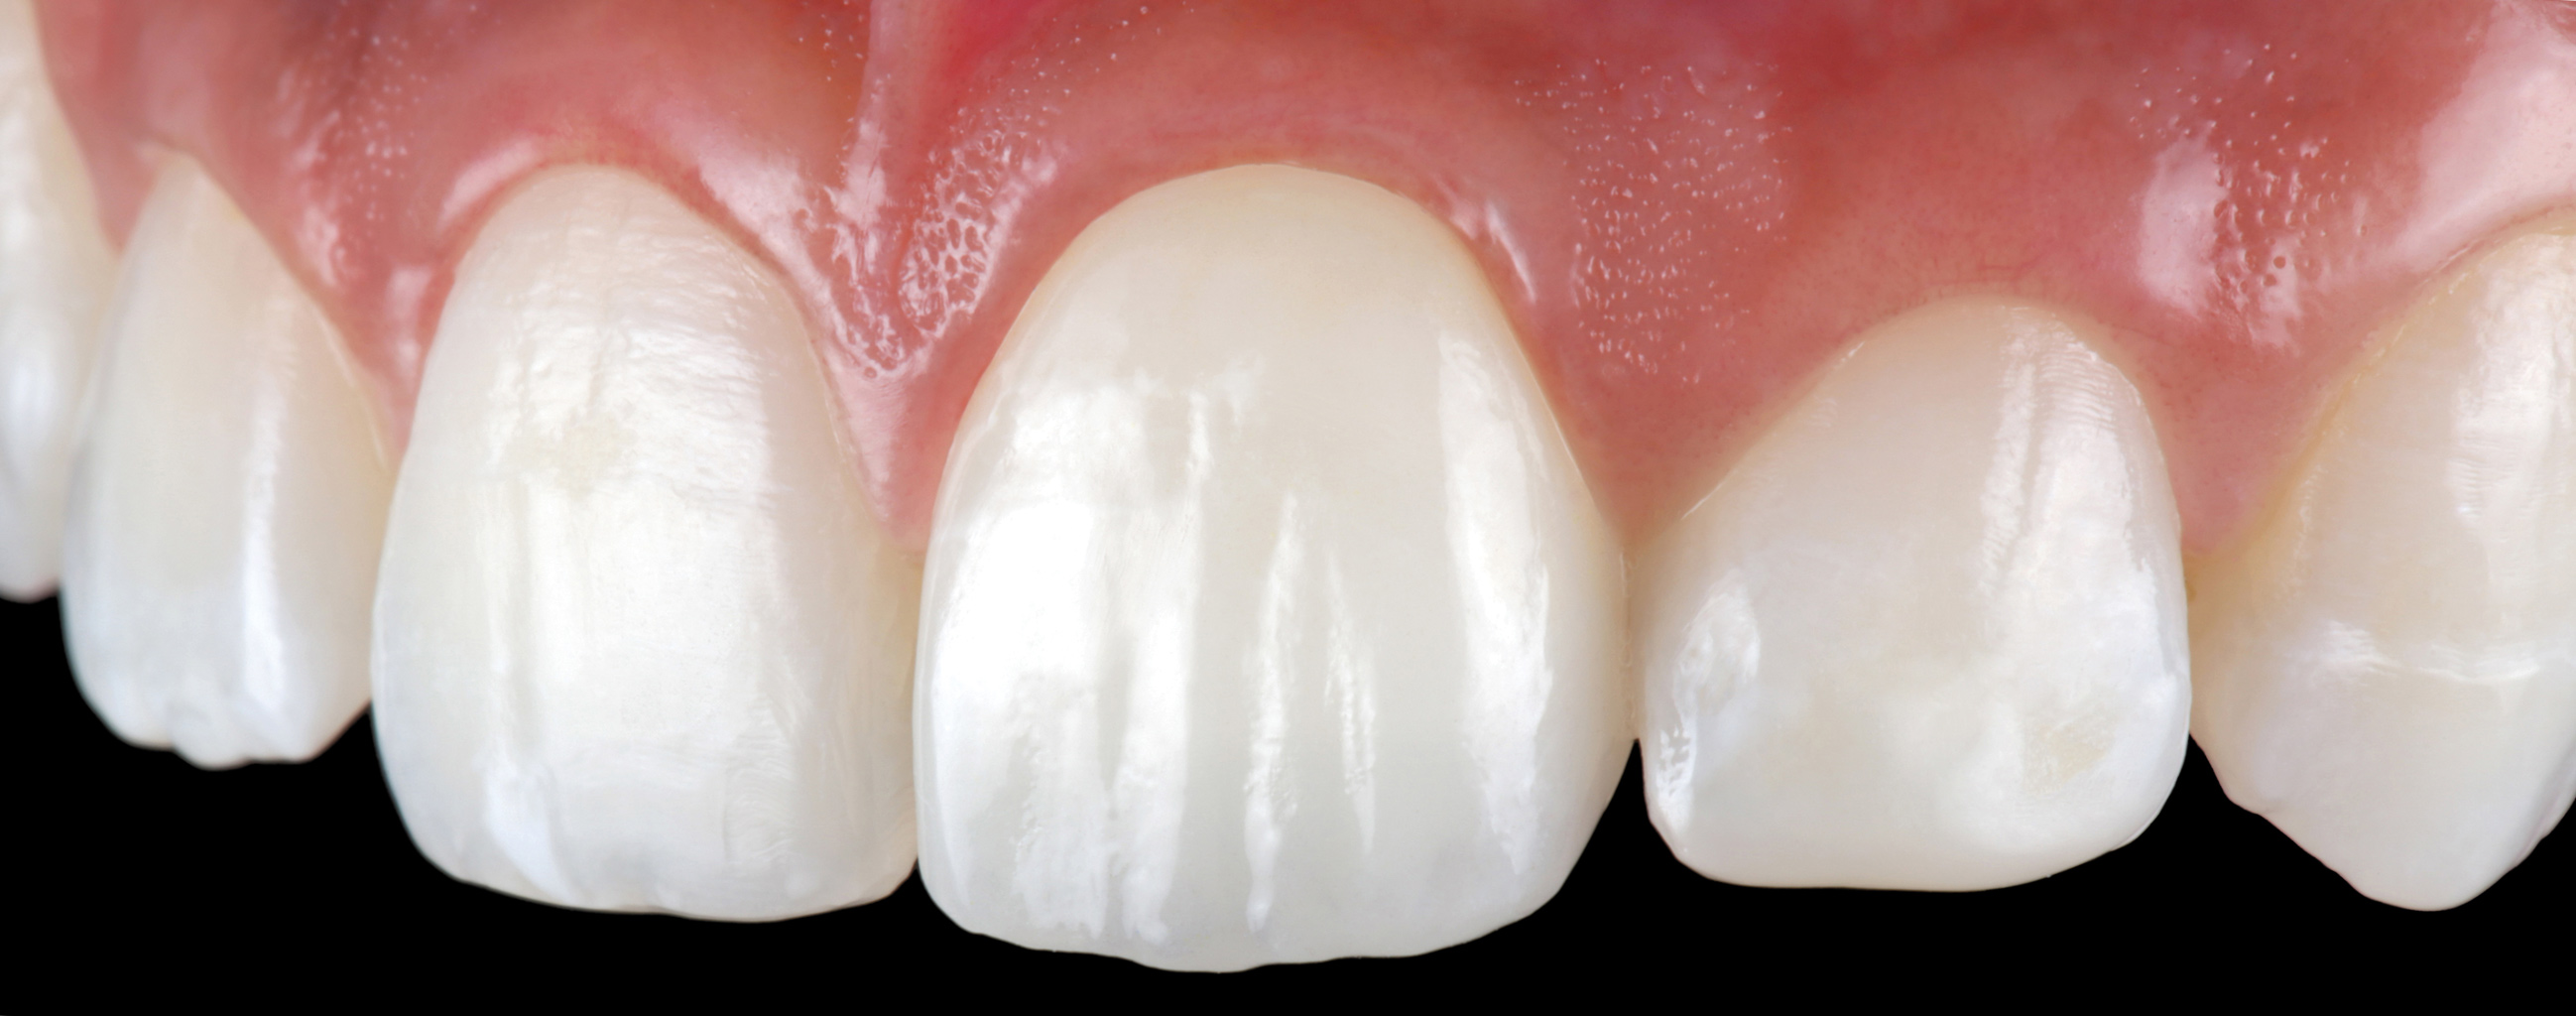 Cementation and Bonding of Zirconia Restorations  Special Issues